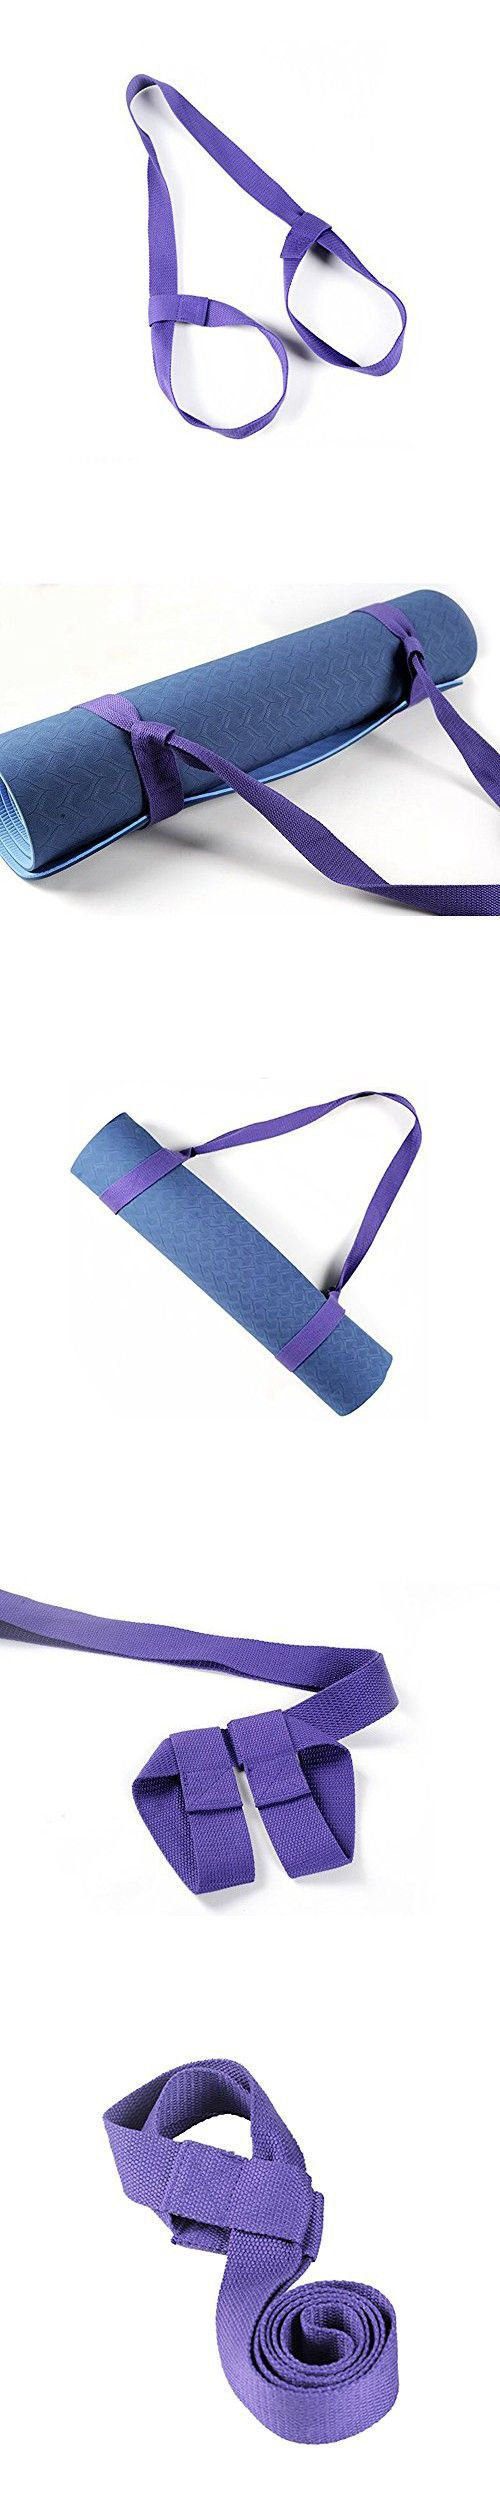 Non-Slip Adjustable Polyester Cotton Yoga Mat Sling Carry Strap Belts for Yoga Mat Pilates Exercises Aerobics Fitness Mat, Purple